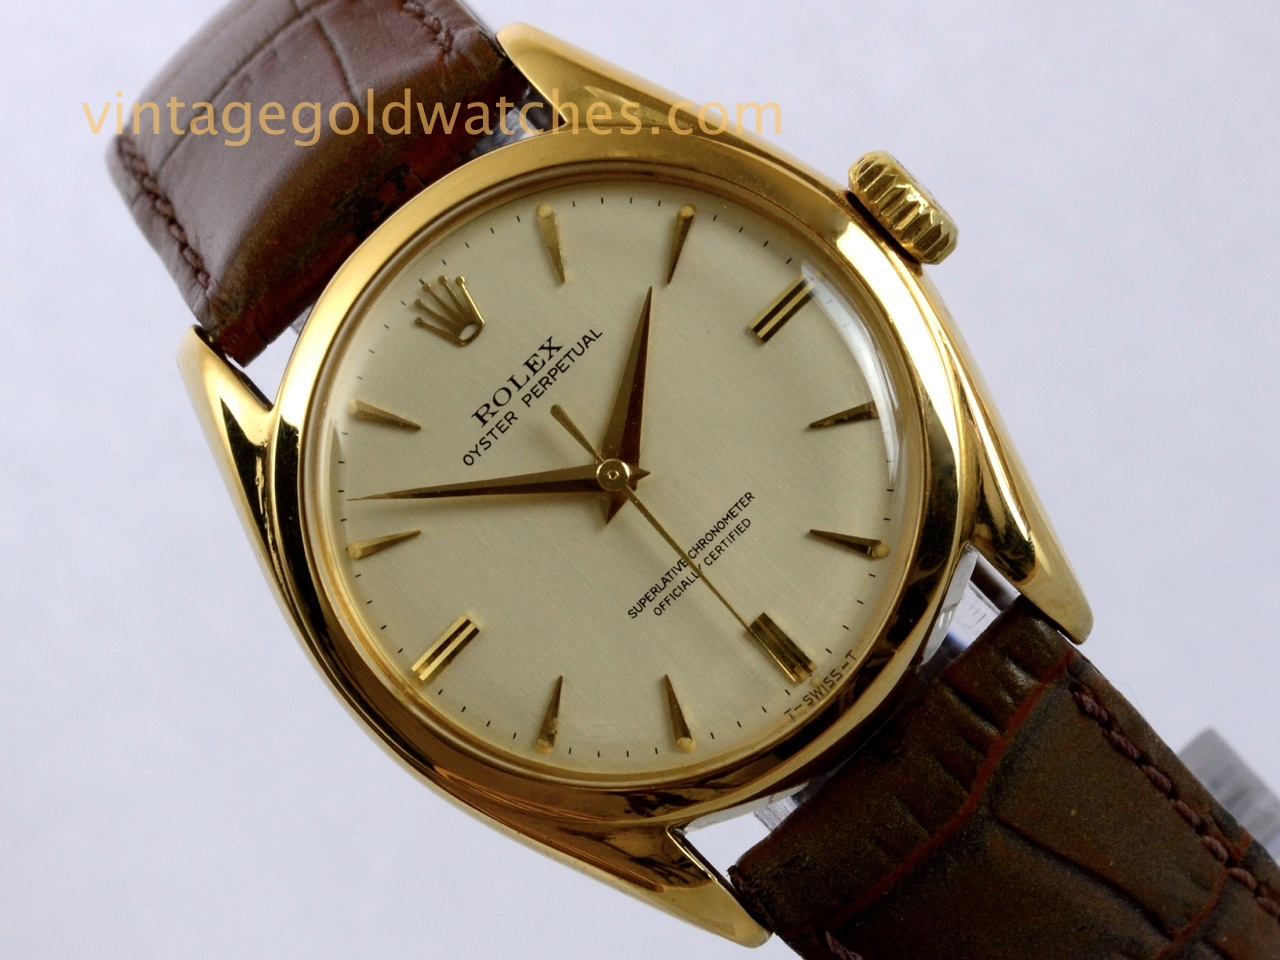 Rolex oyster perpetual 18ct guilloch dial 1953 vintage gold watches for Vintage gold watch